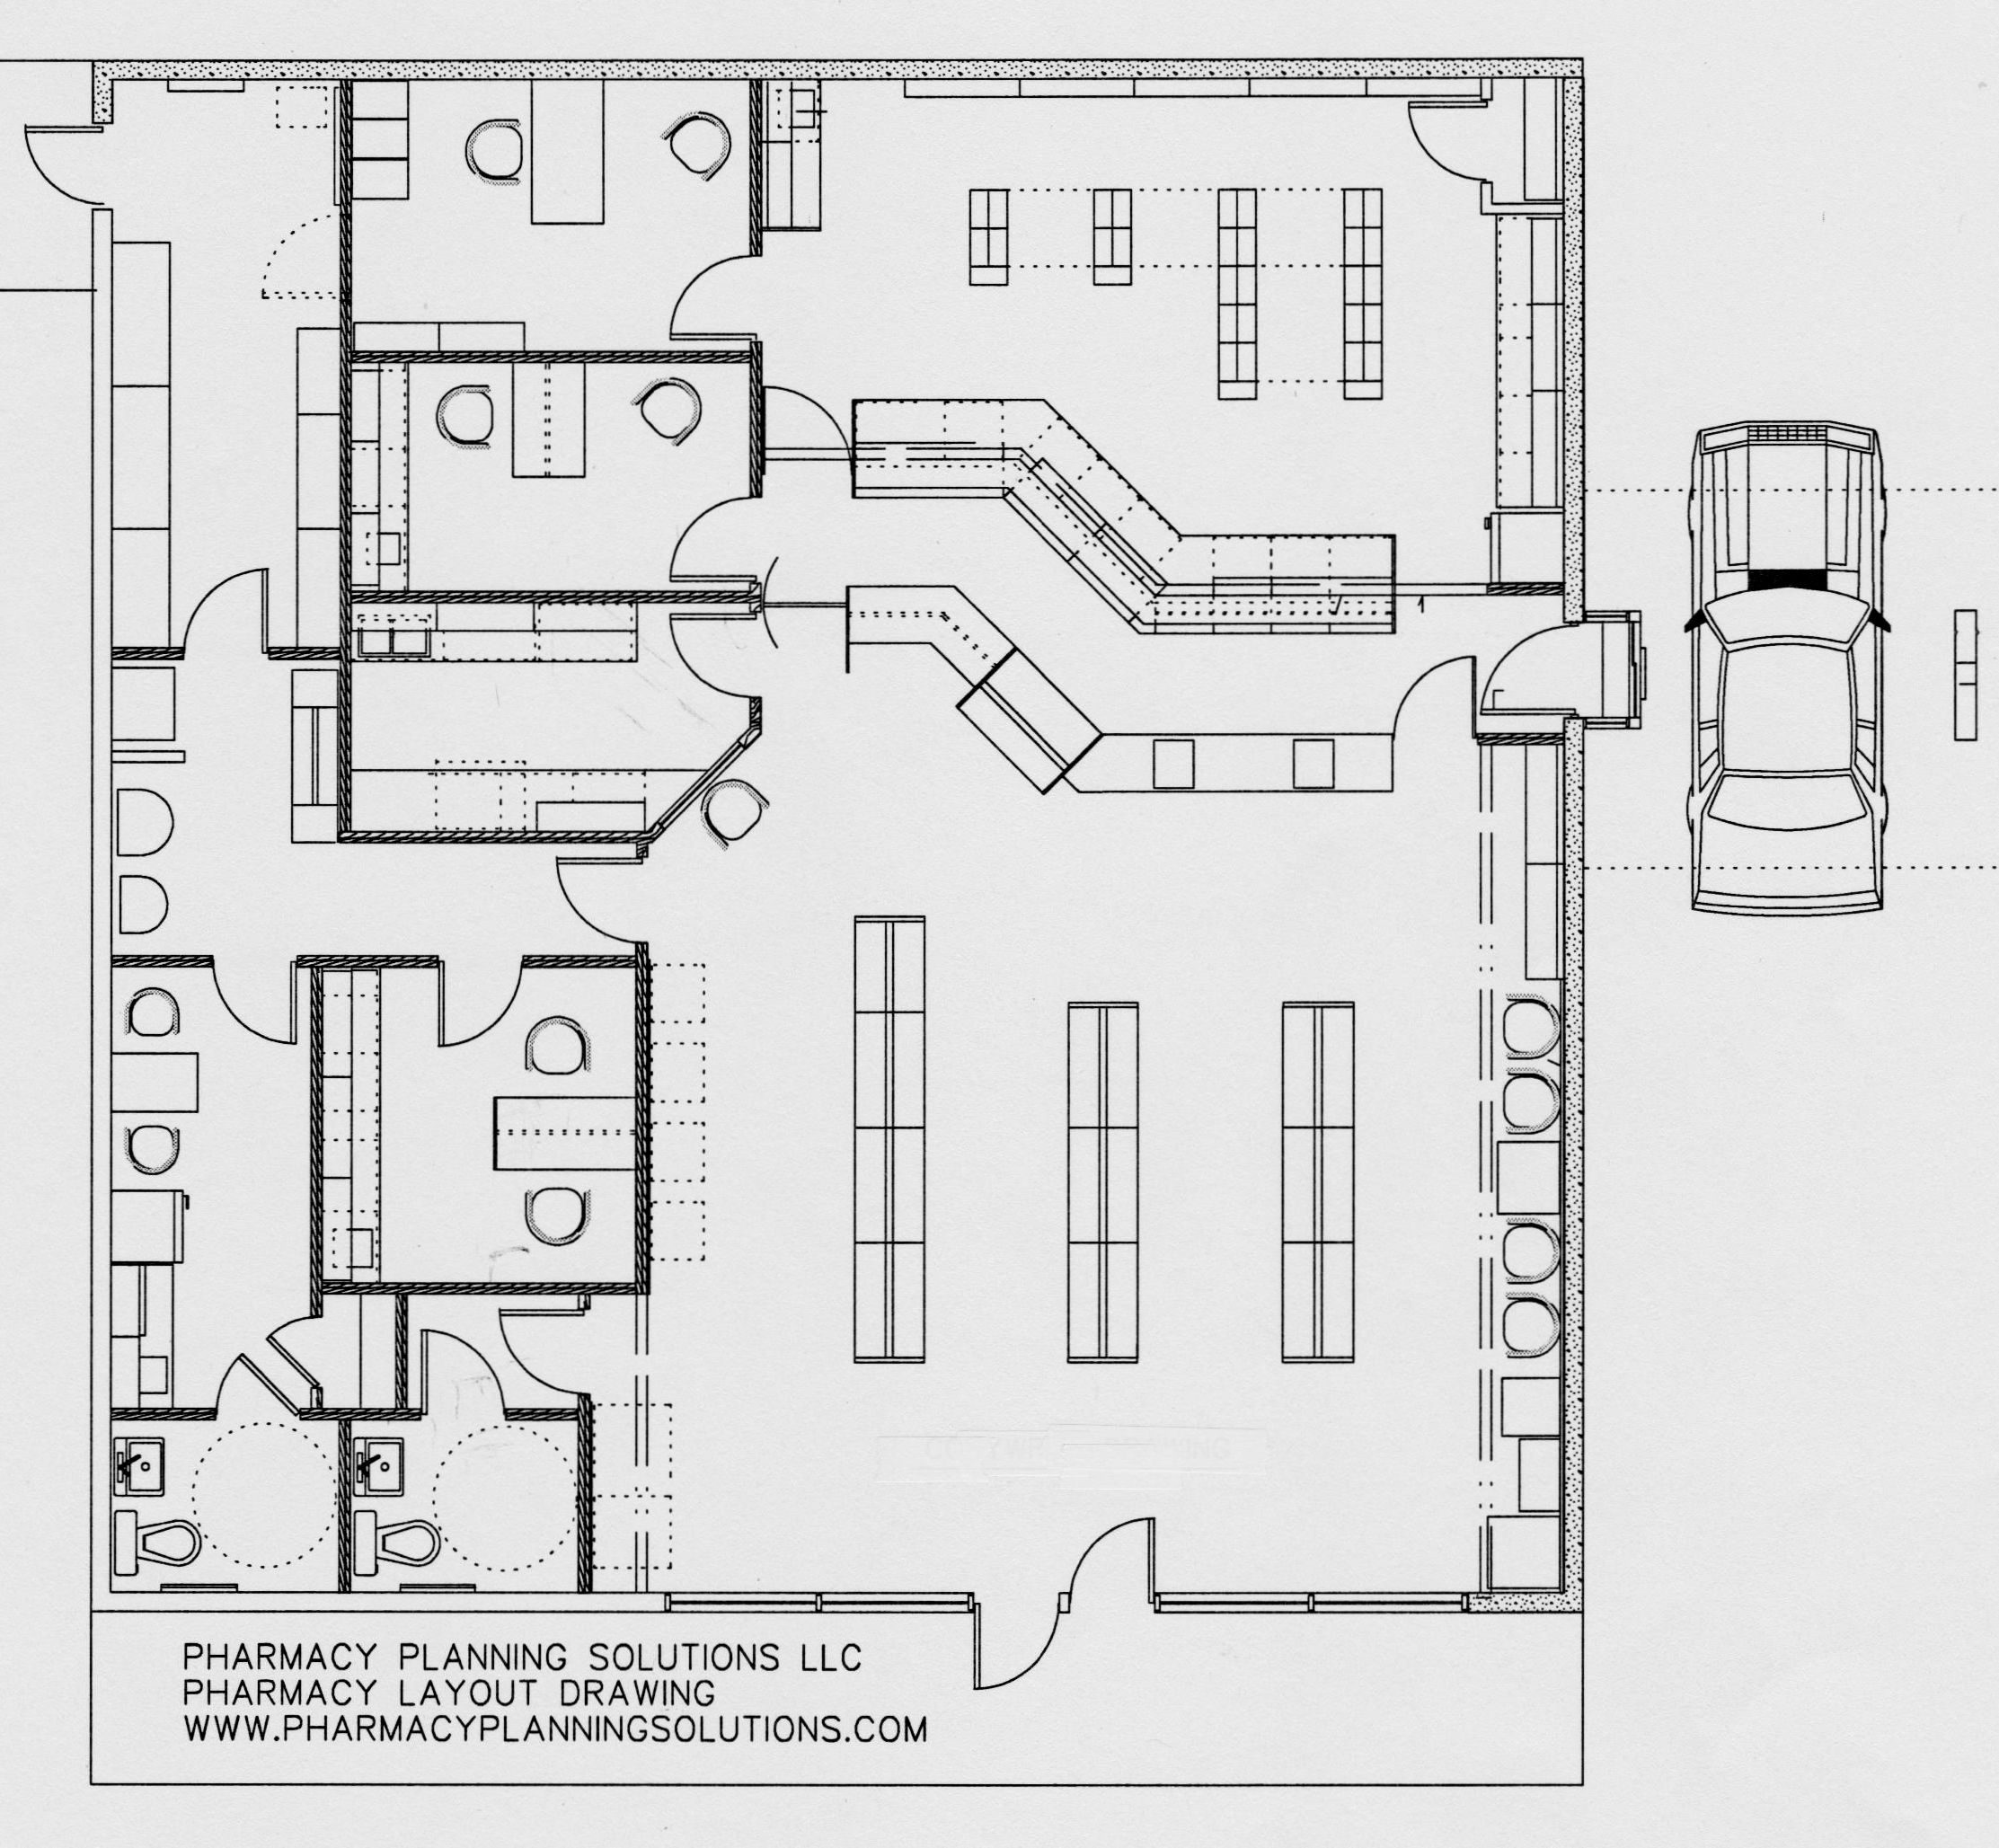 Pharmacy Layout By Pharmacy Planning Solutions